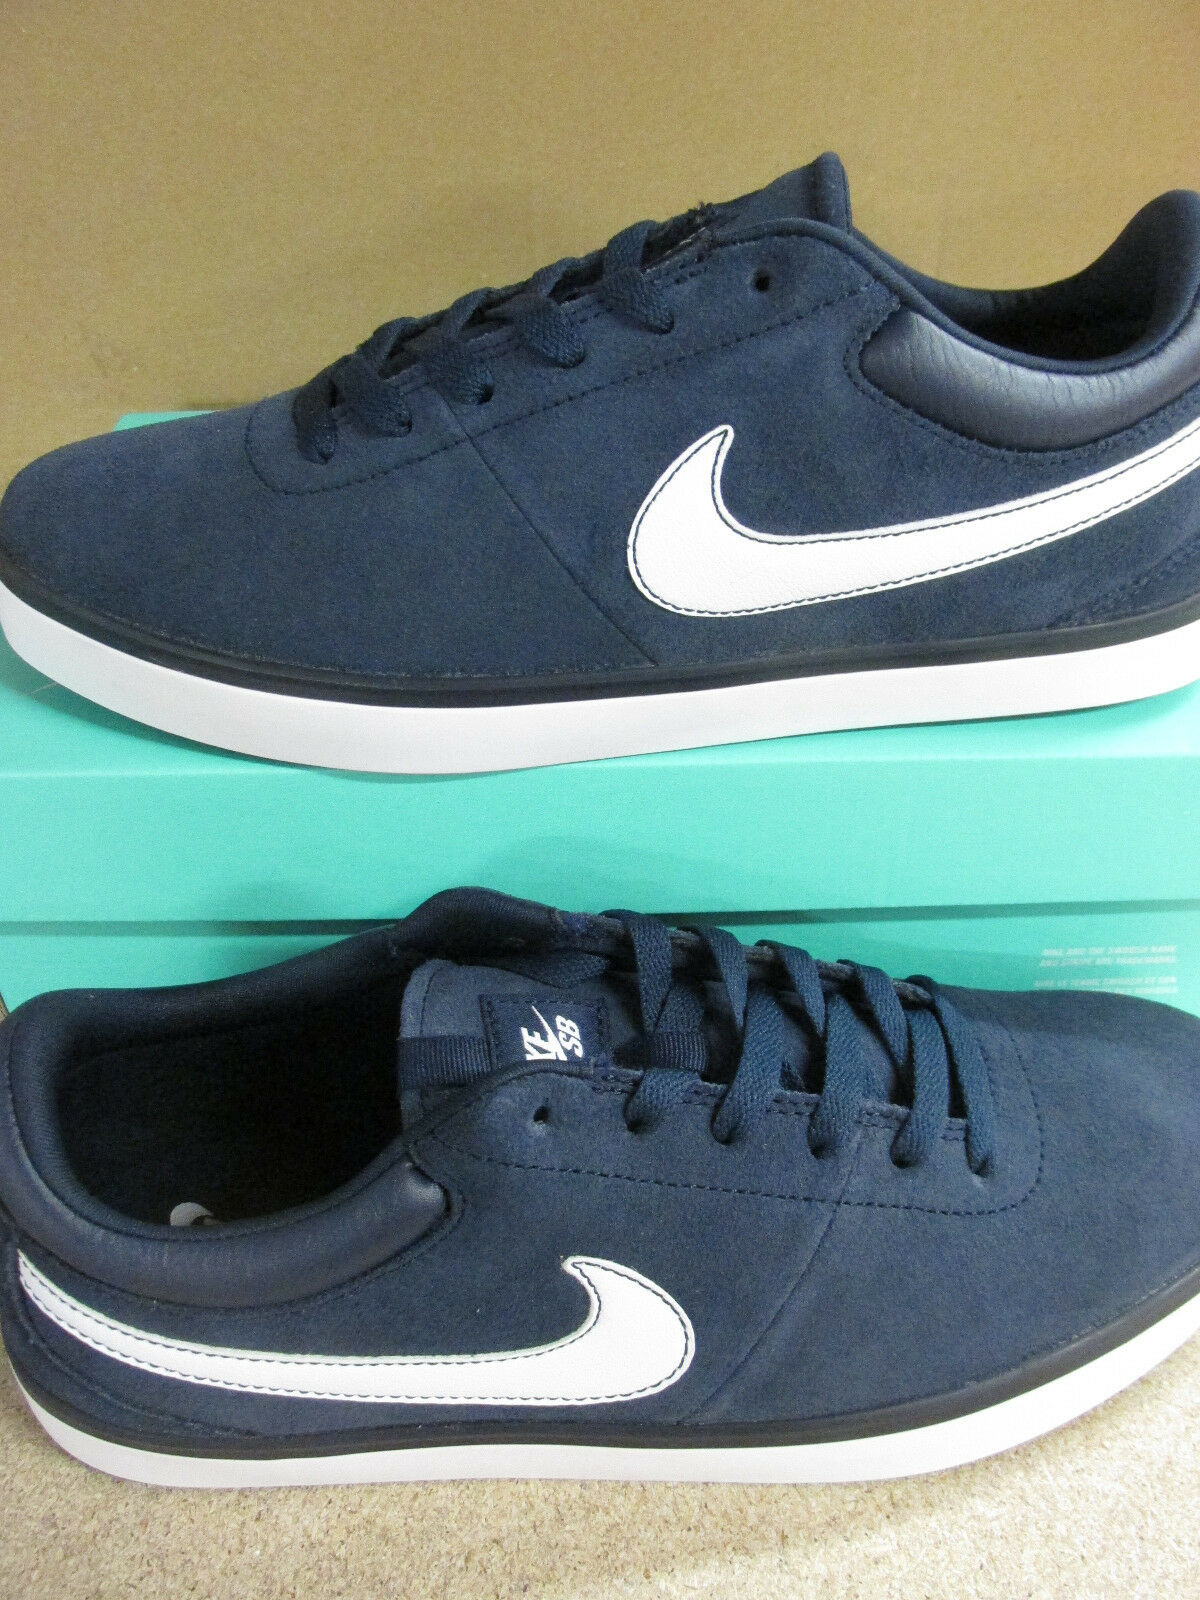 nike SB rabona LR homme trainers 641747 411 sneakers chaussures